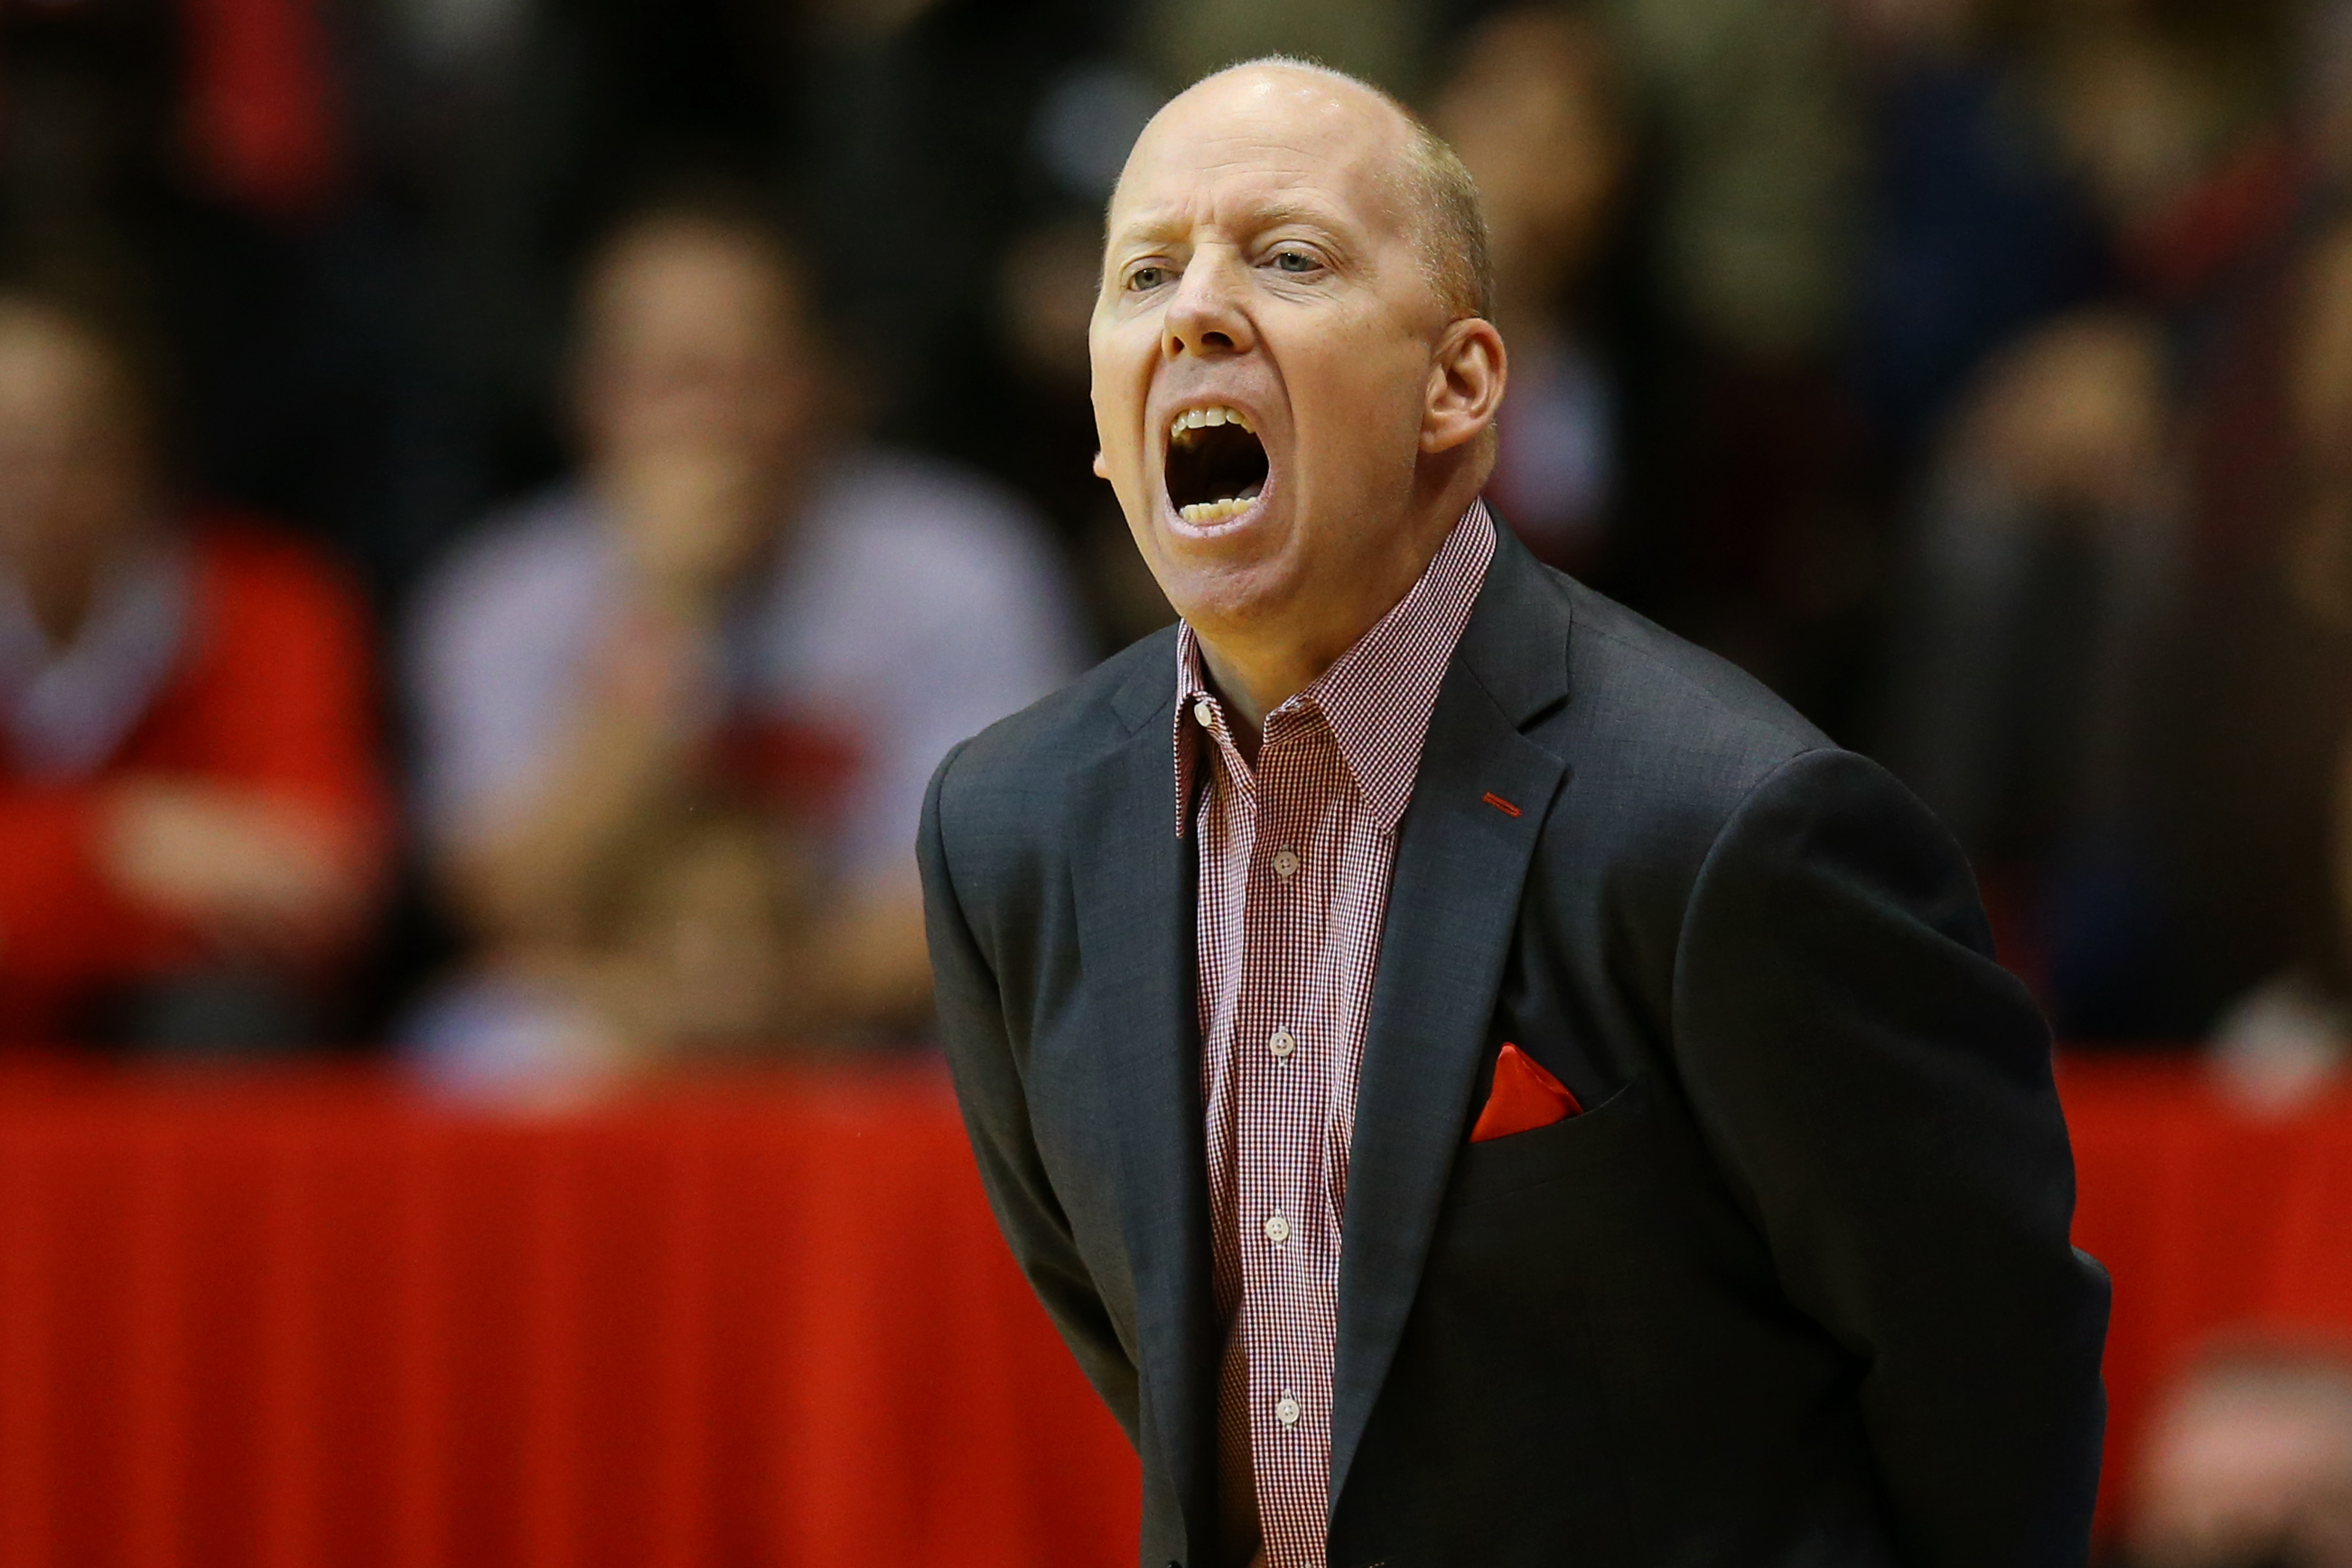 Nov 26, 2016; Cincinnati, OH, USA; Cincinnati Bearcats head coach Mick Cronin reacts from the bench against the Lipscomb Bisons in the first half at Fifth Third Arena. Mandatory Credit: Aaron Doster-USA TODAY Sports